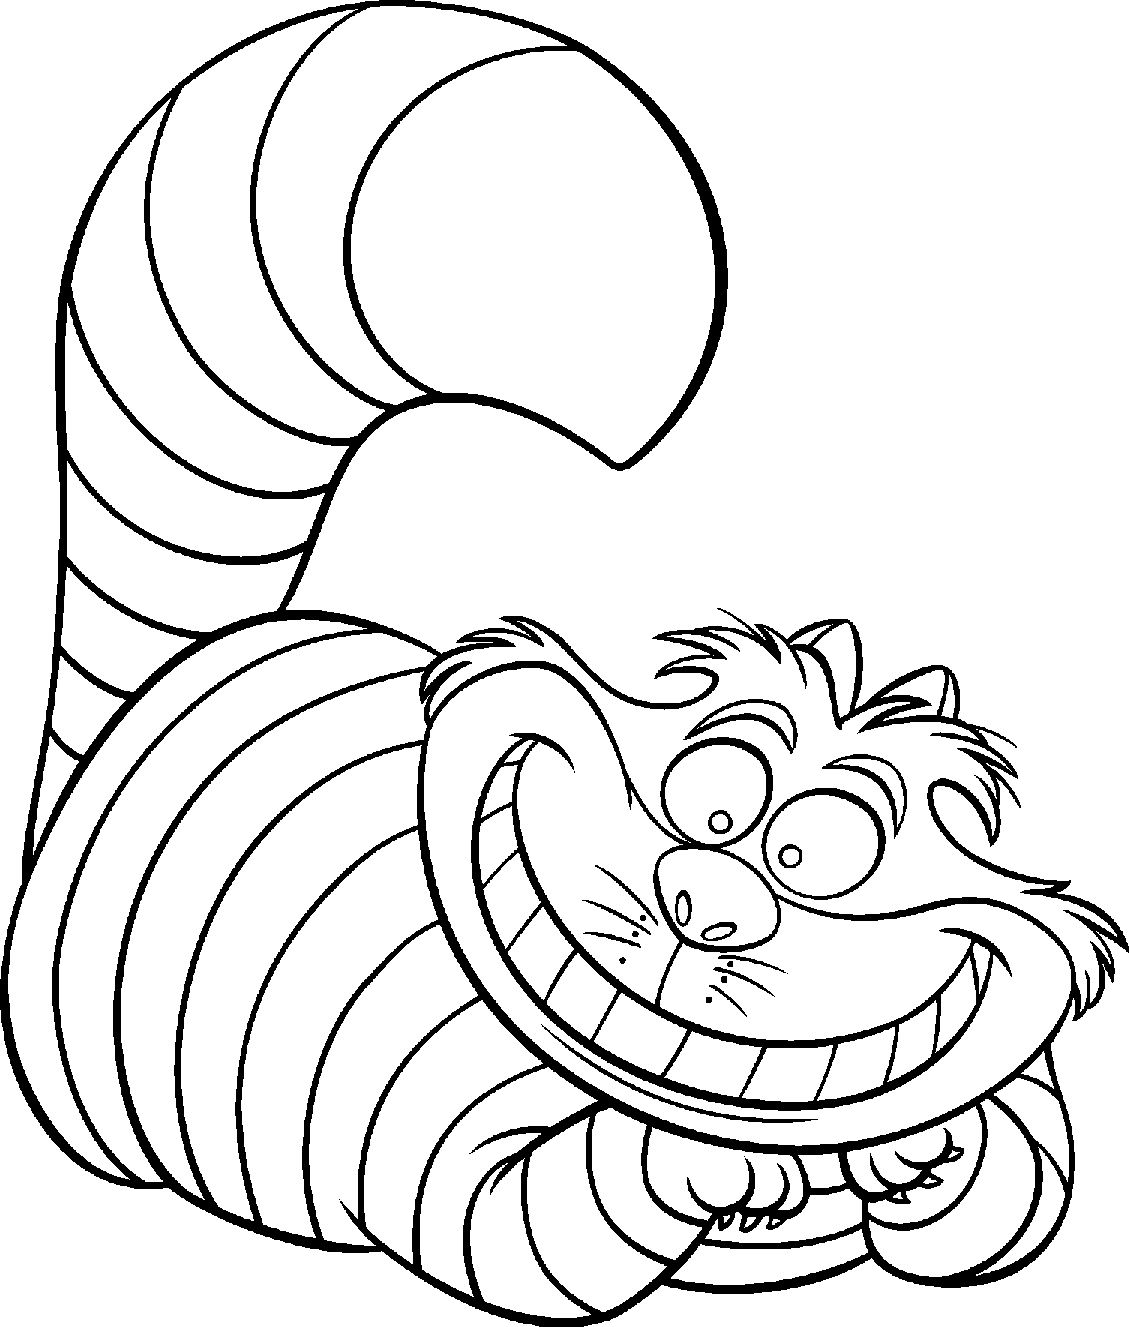 Disney Cheshire Cat Coloring Pages | Coloring Pages | Pinterest